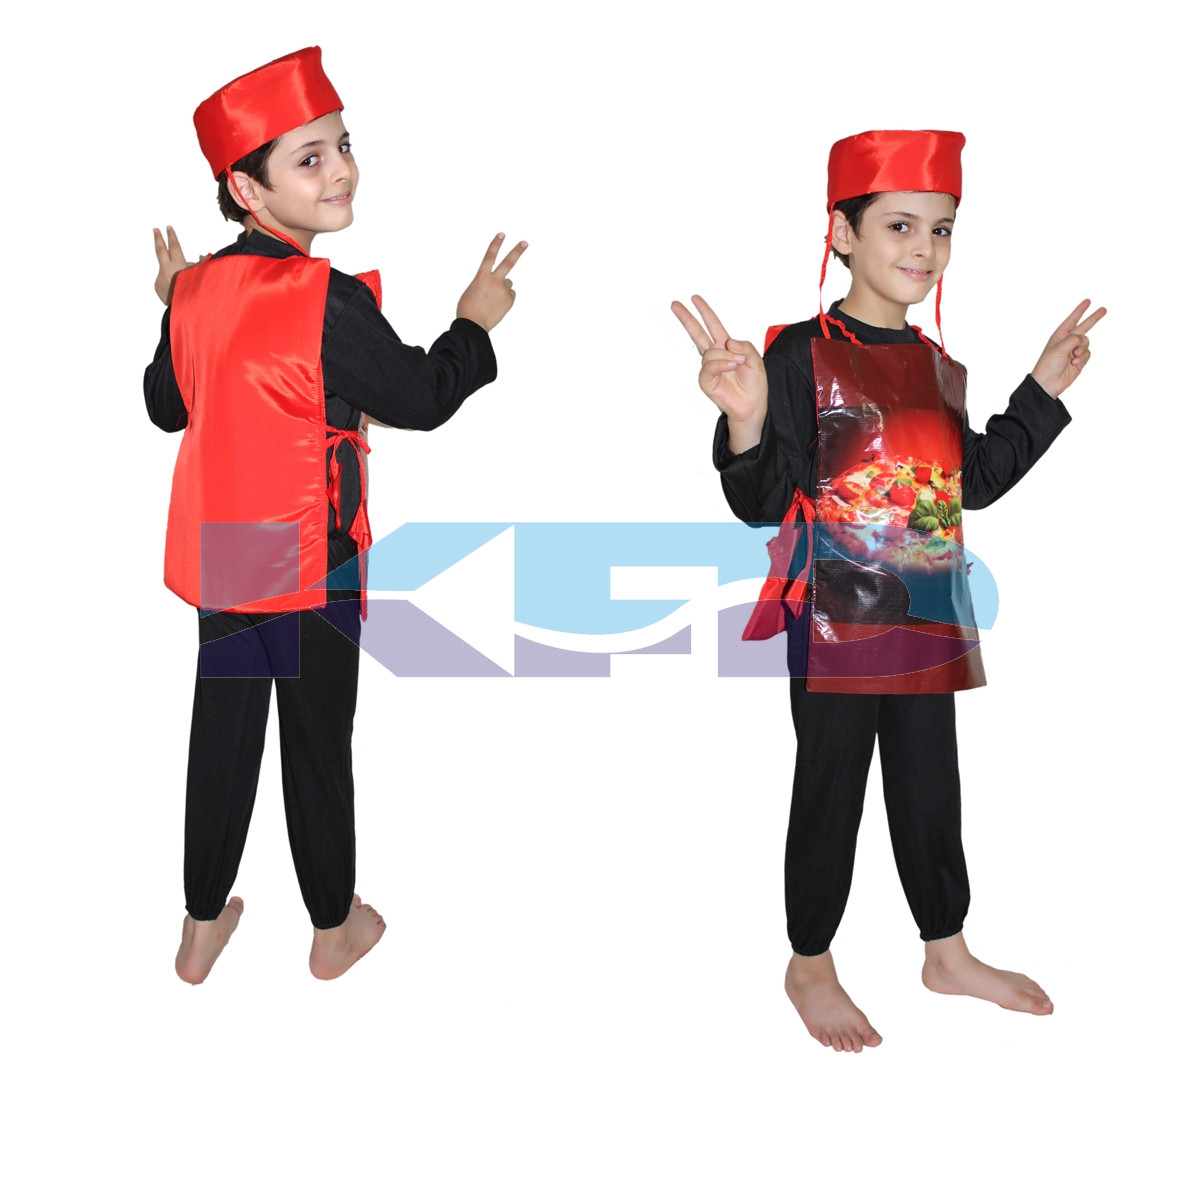 Burger fancy dress for kids,Object Costume for School Annual function/Theme Party/Competition/Stage Shows Dress